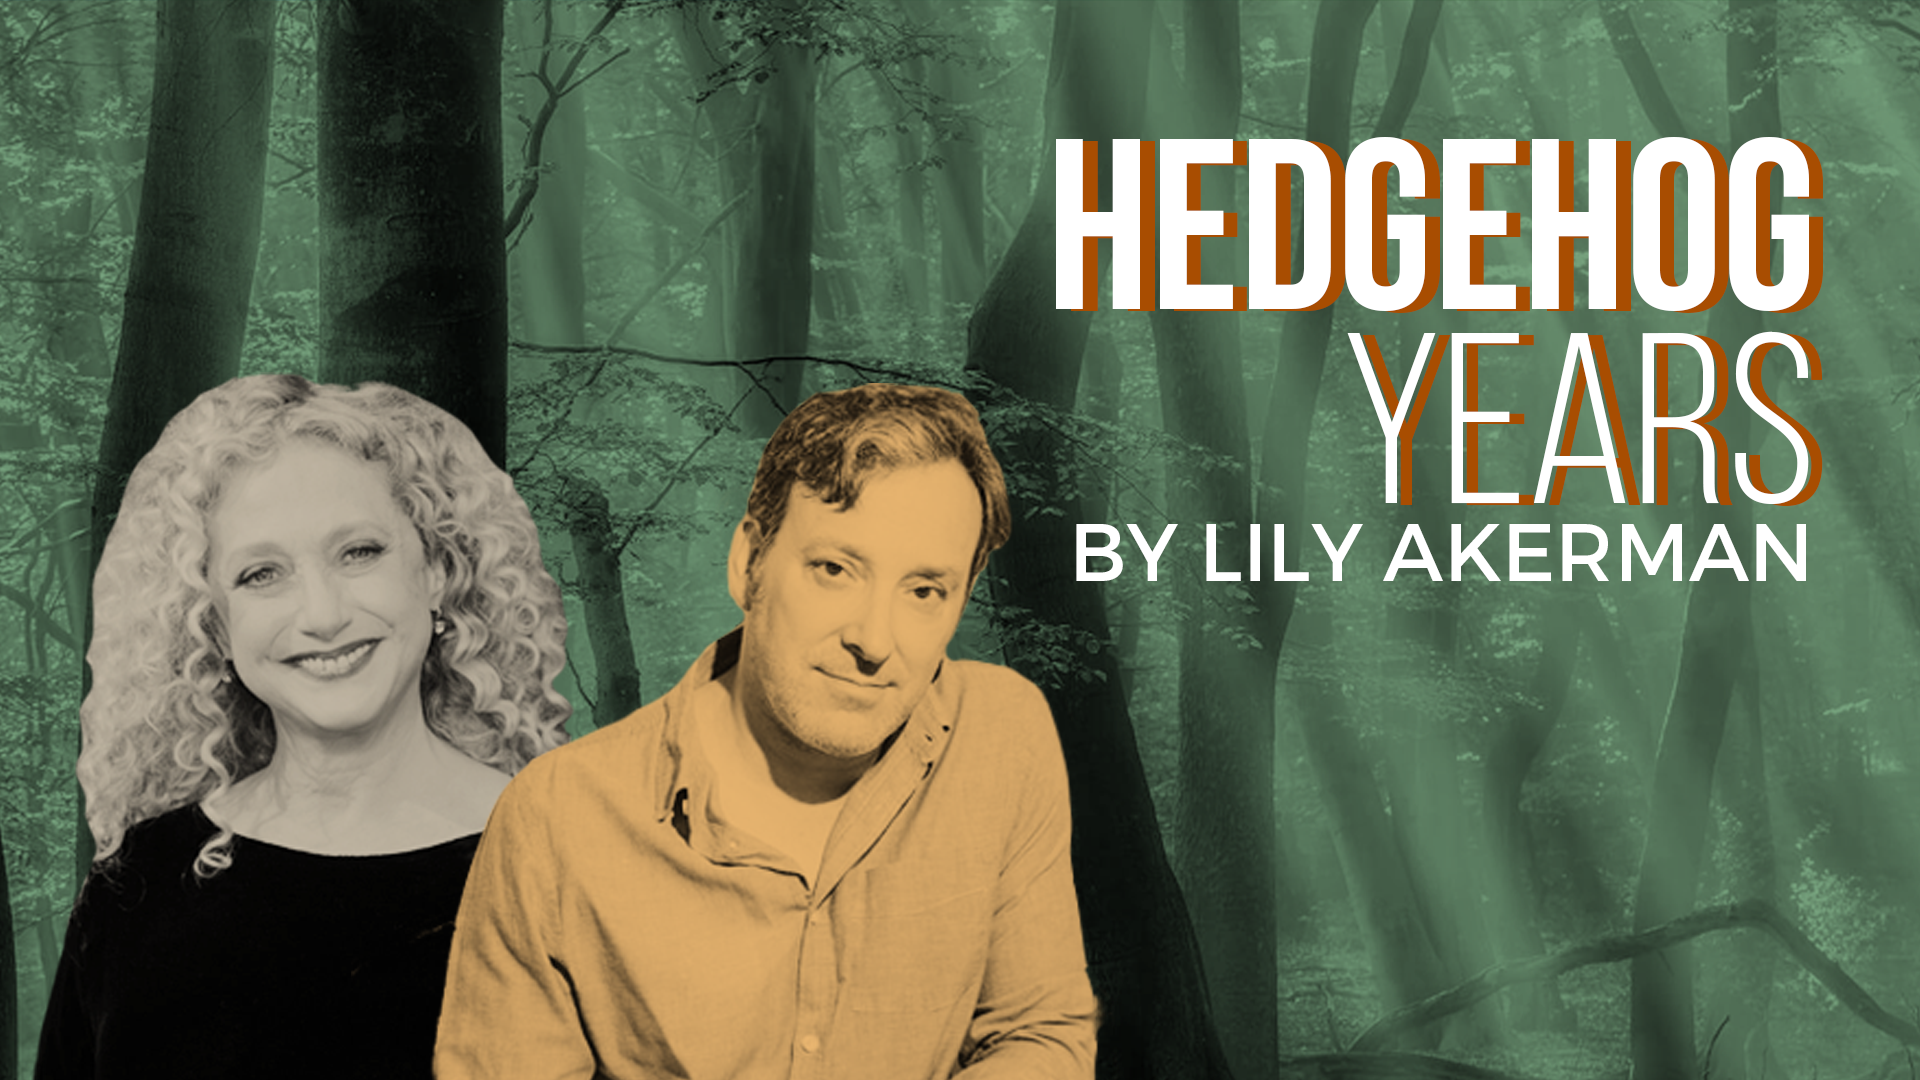 Caption: Hedgehog Years by Lily Akerman